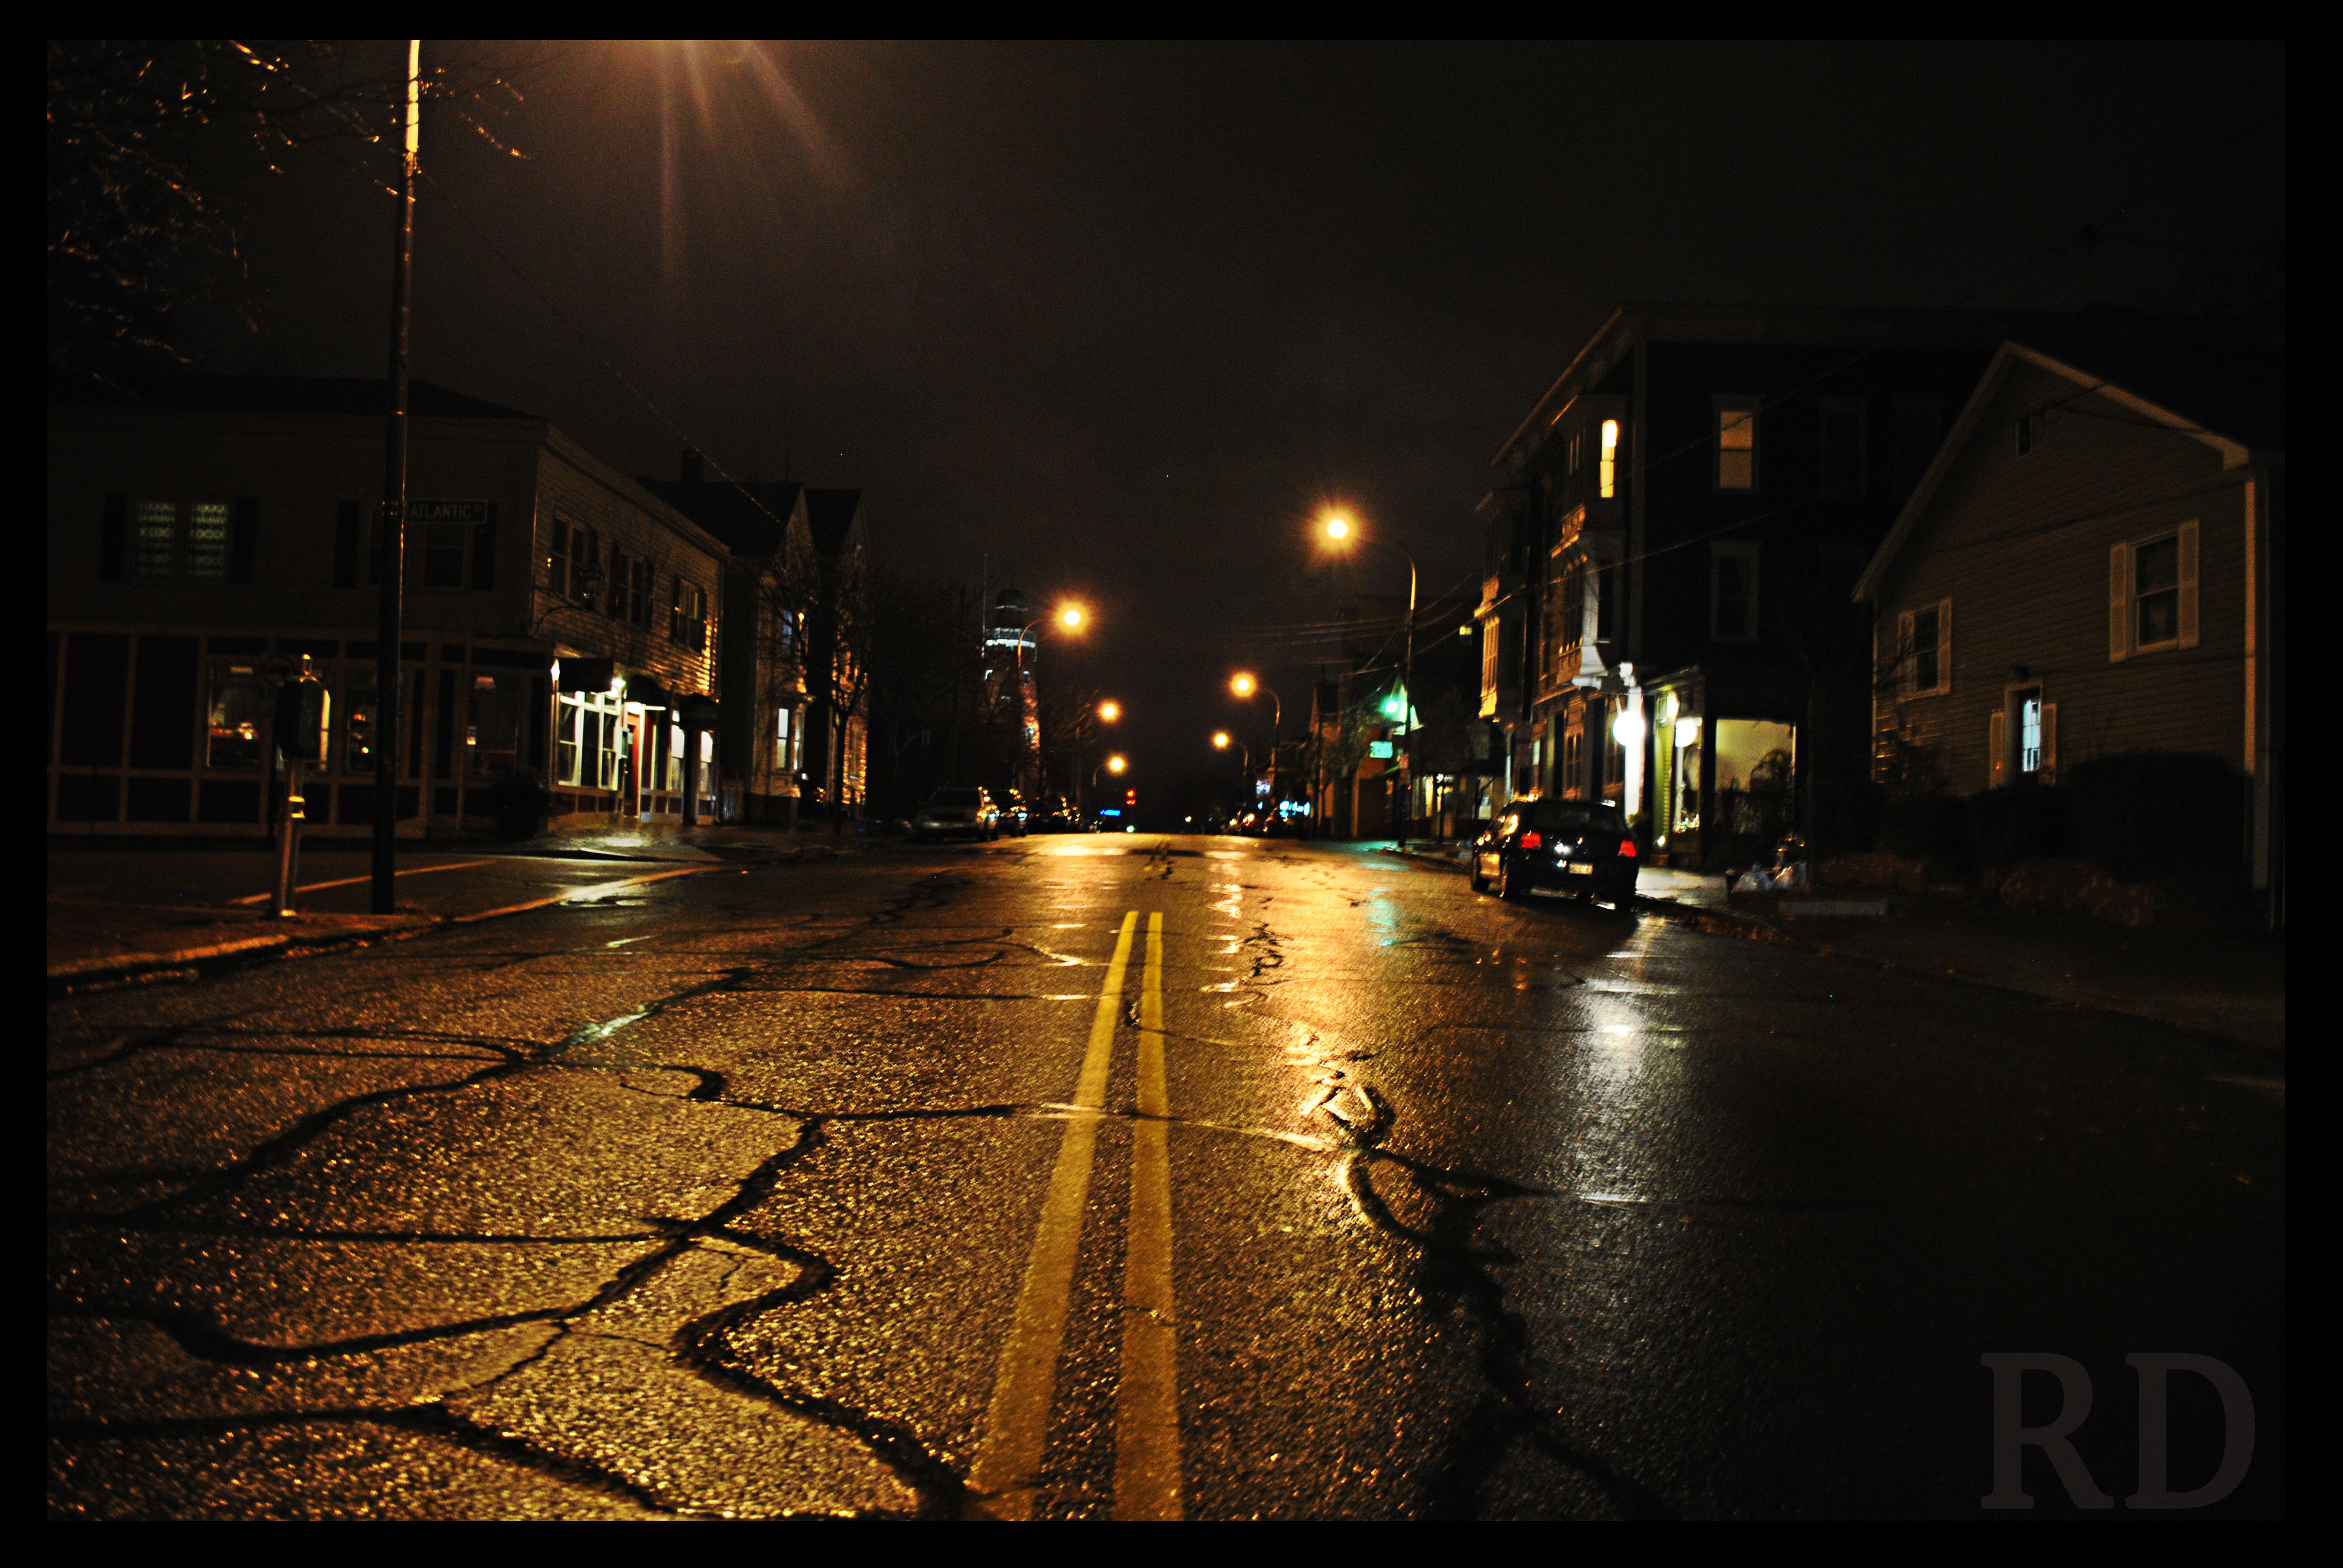 Empty City Street Wallpaper View Topic Turned To Ashes 1x1 With Mira27 Chicken